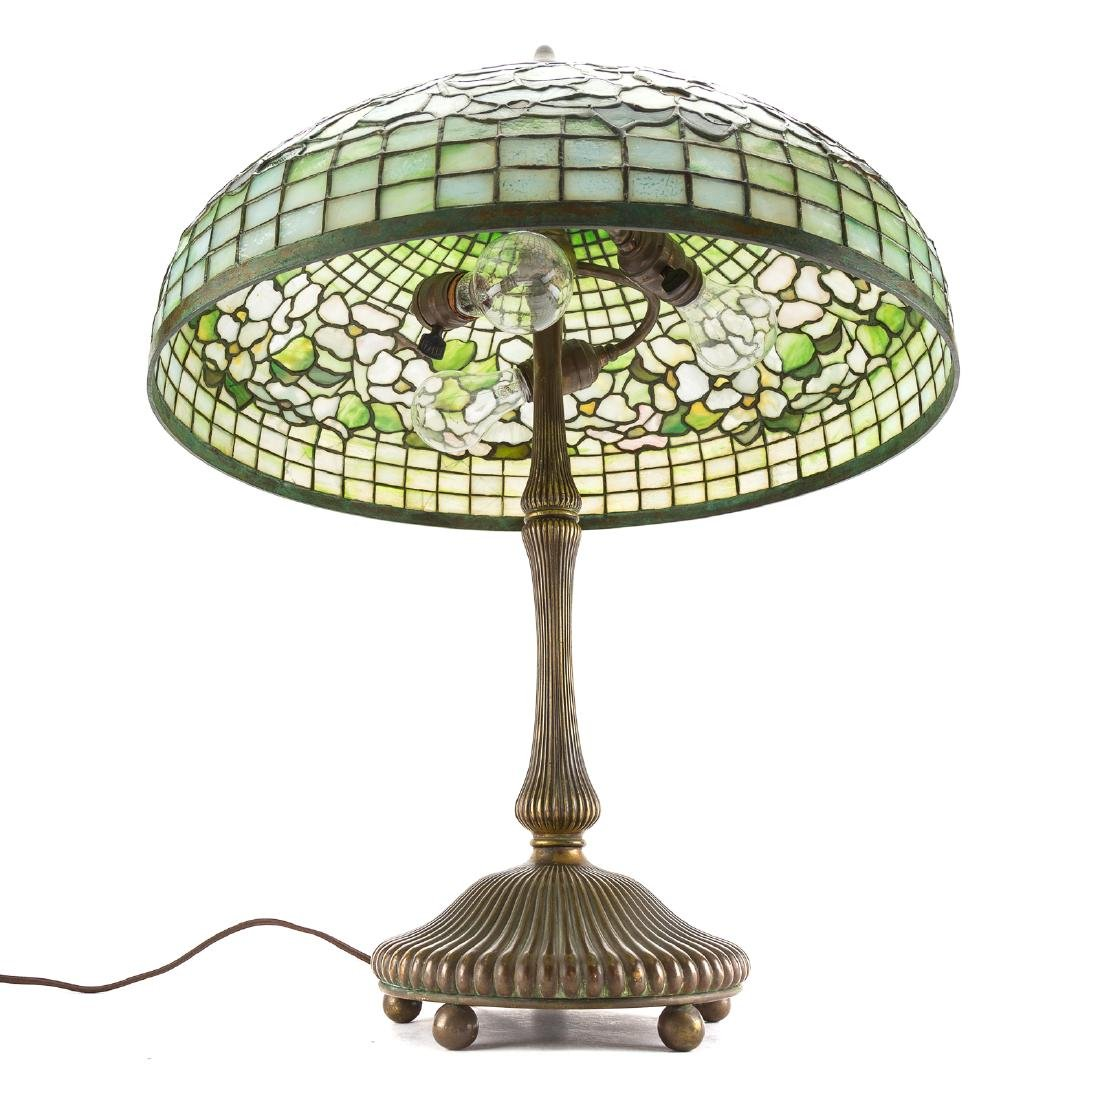 Tiffany leaded glass and bronze table lamp - 9